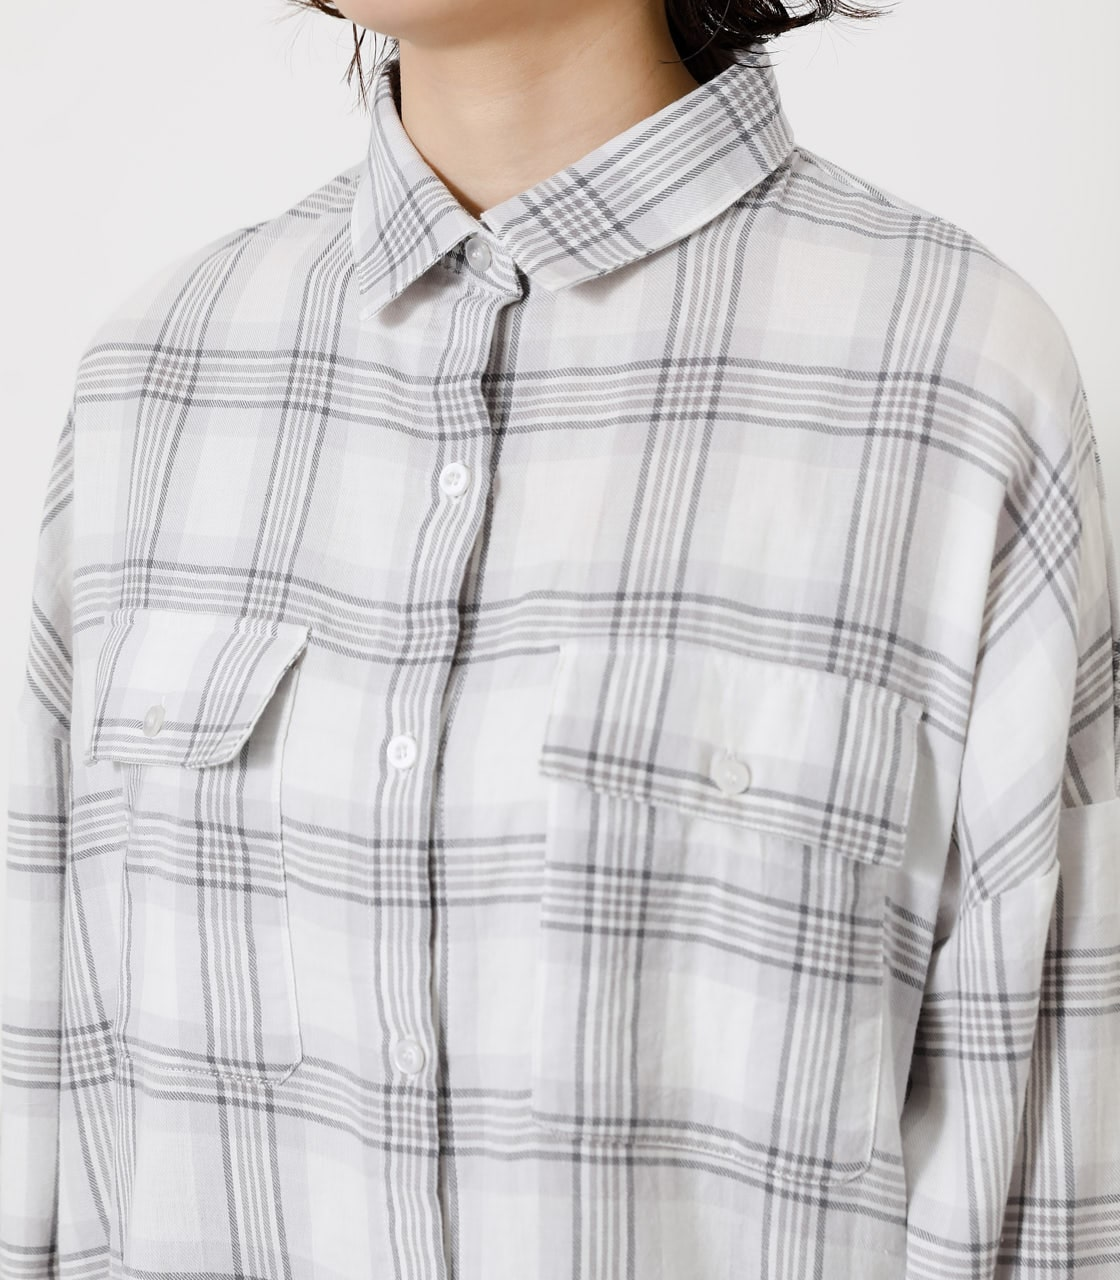 CHECK LOOSE SHIRT/チェックルーズシャツ 詳細画像 柄WHT 7